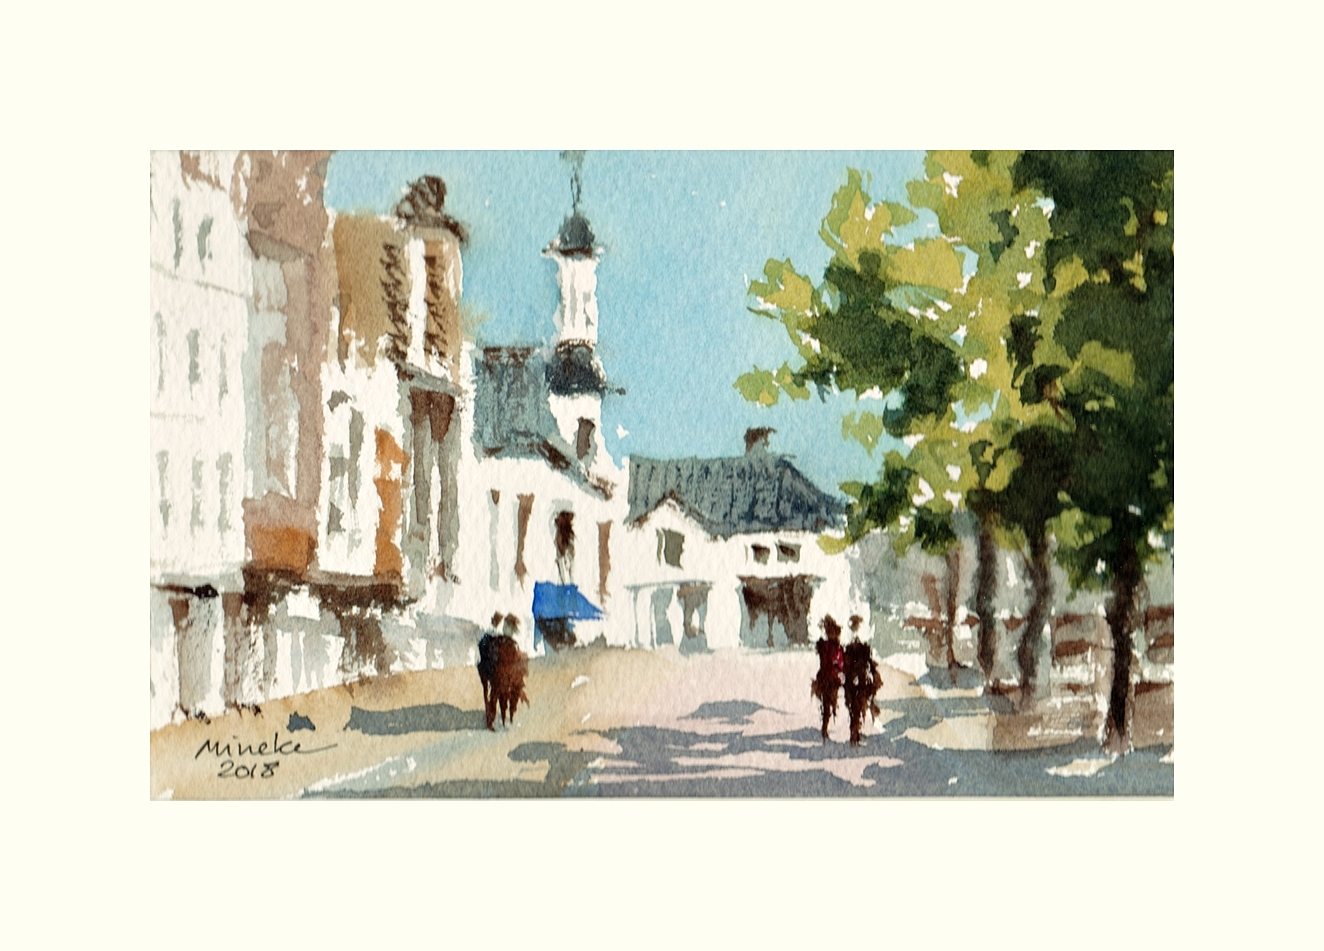 2018-080618-art-minekereinders-small-watercolor-blue-awning